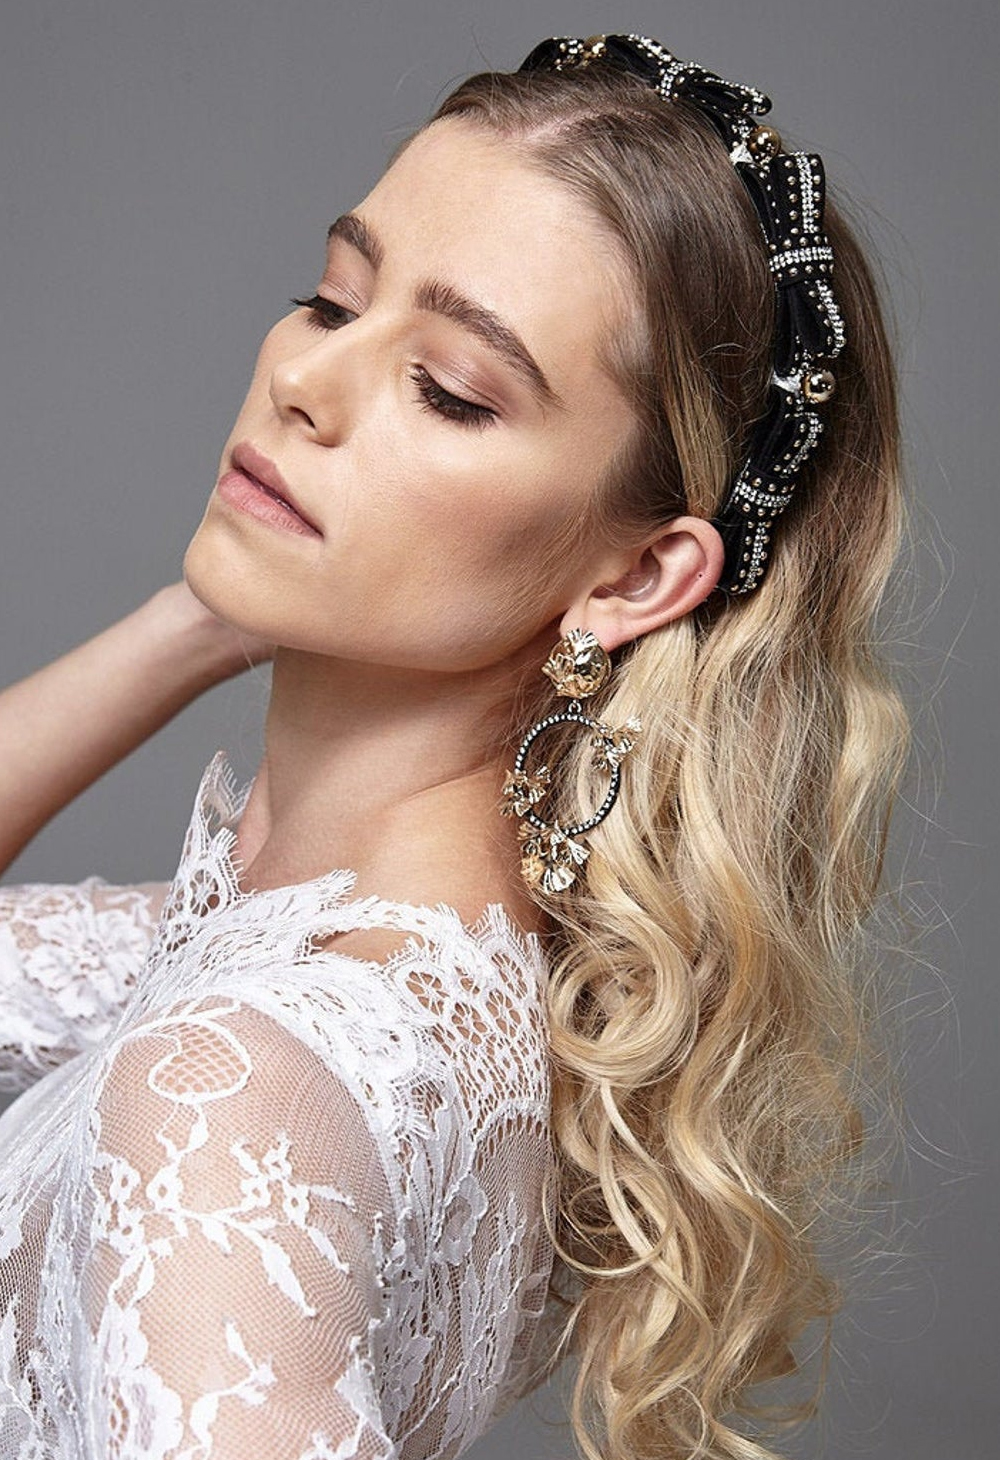 Black Bow Embellished Headband 2020. Winter Embellished Headbands 2020. Bow embellished Headbands 2020. Best Padded Headbands 2020. Best Embellished Headbands 2020. Padded headbands trend 2020.